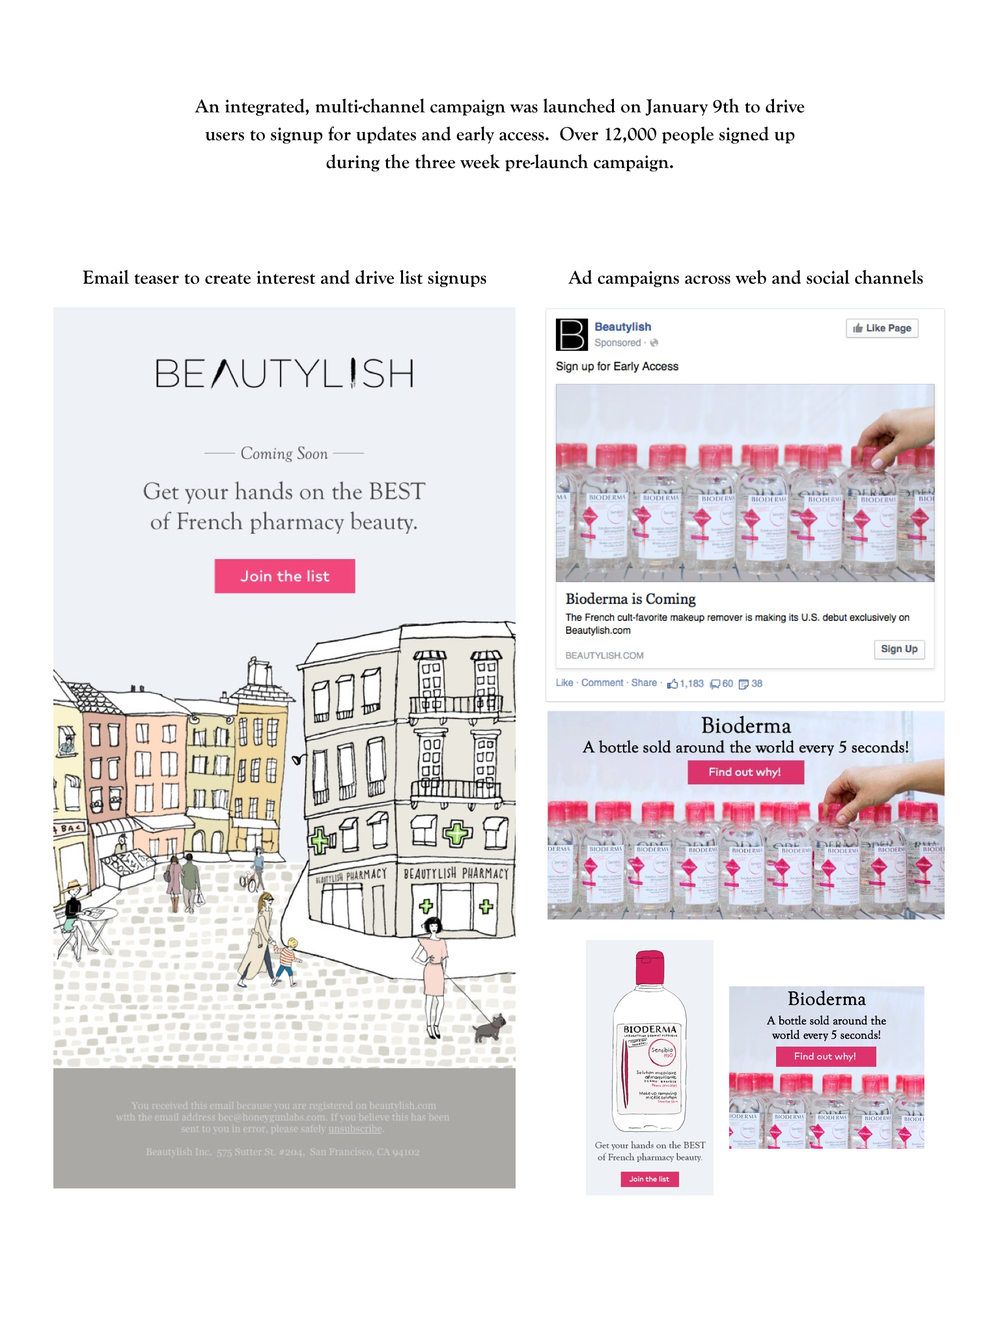 beautylish_bioderma_launch_summary.010.jpg